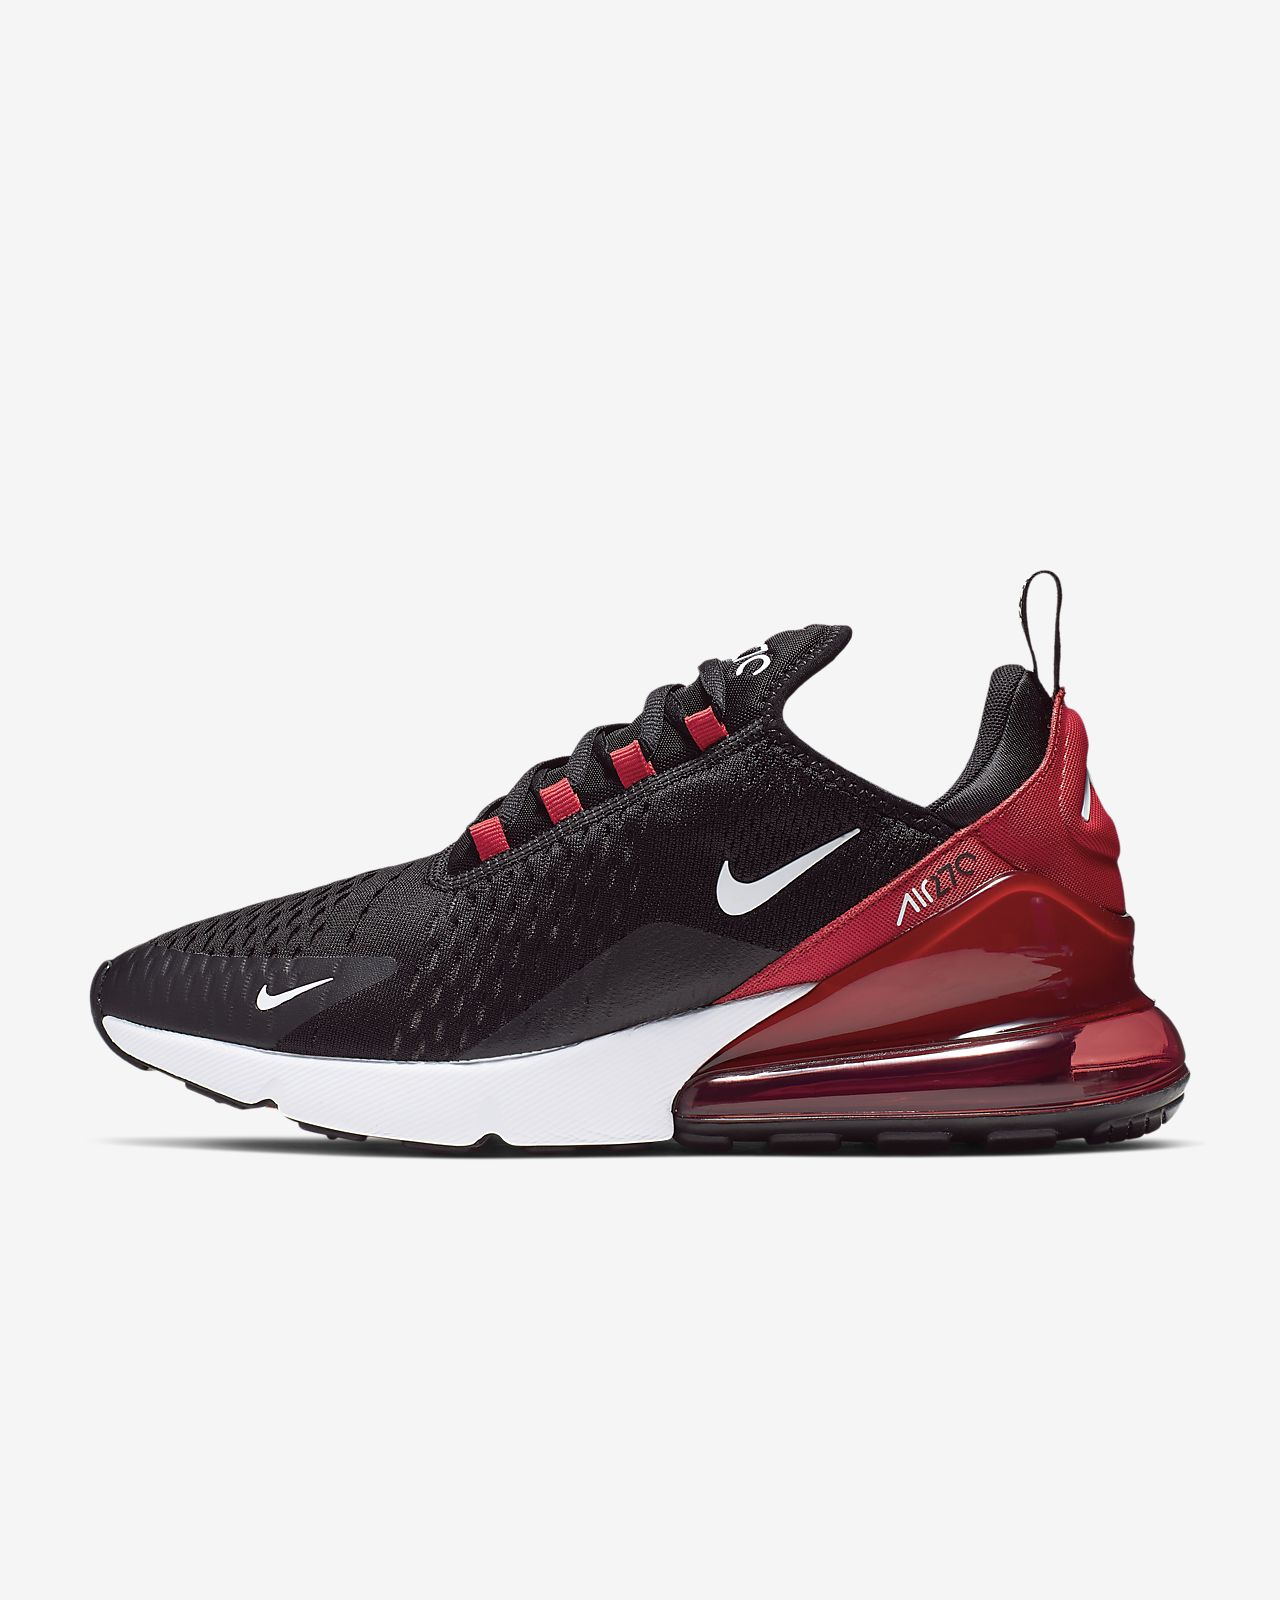 c371266d3388 Nike Air Max 270 Men s Shoe. Nike.com GB